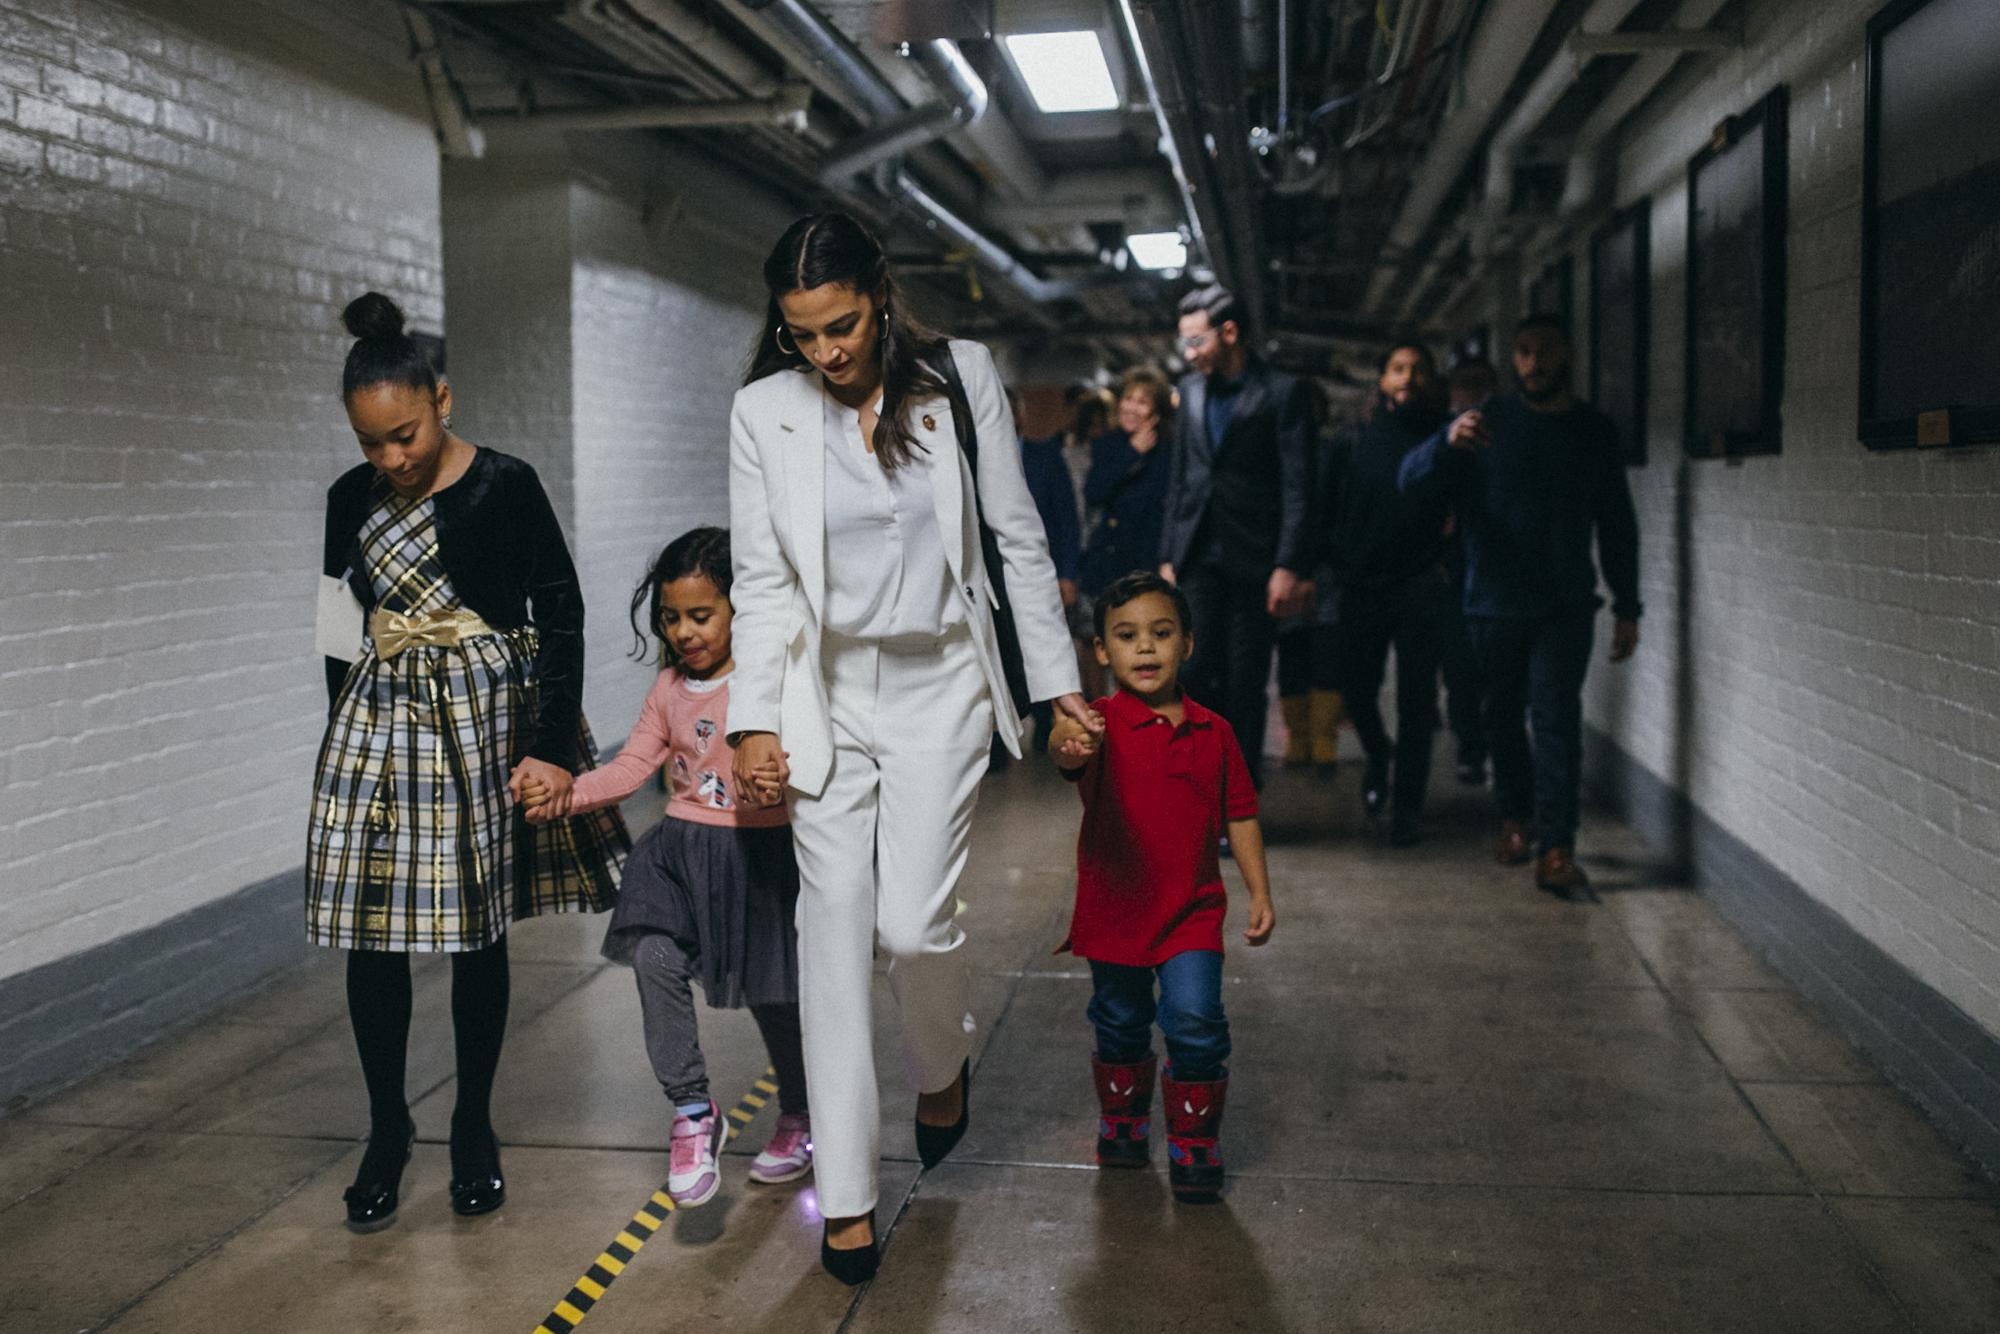 Congresswoman Alexandria Ocasio-Cortez, center, is accompanied by loved ones as she navigates the underground tunnels of the United States Capitol Complex to take the oath of office, in Washington D.C. District of Columbia, United States of America, January 3, 2019. Seizing an opportunity to shine a light on history, Rep. Alexandria Ocasio-Cortez wears an all-white suit as an homage to the brave women of the United States of American who fought for the 19th Amendment, a women's right to vote.